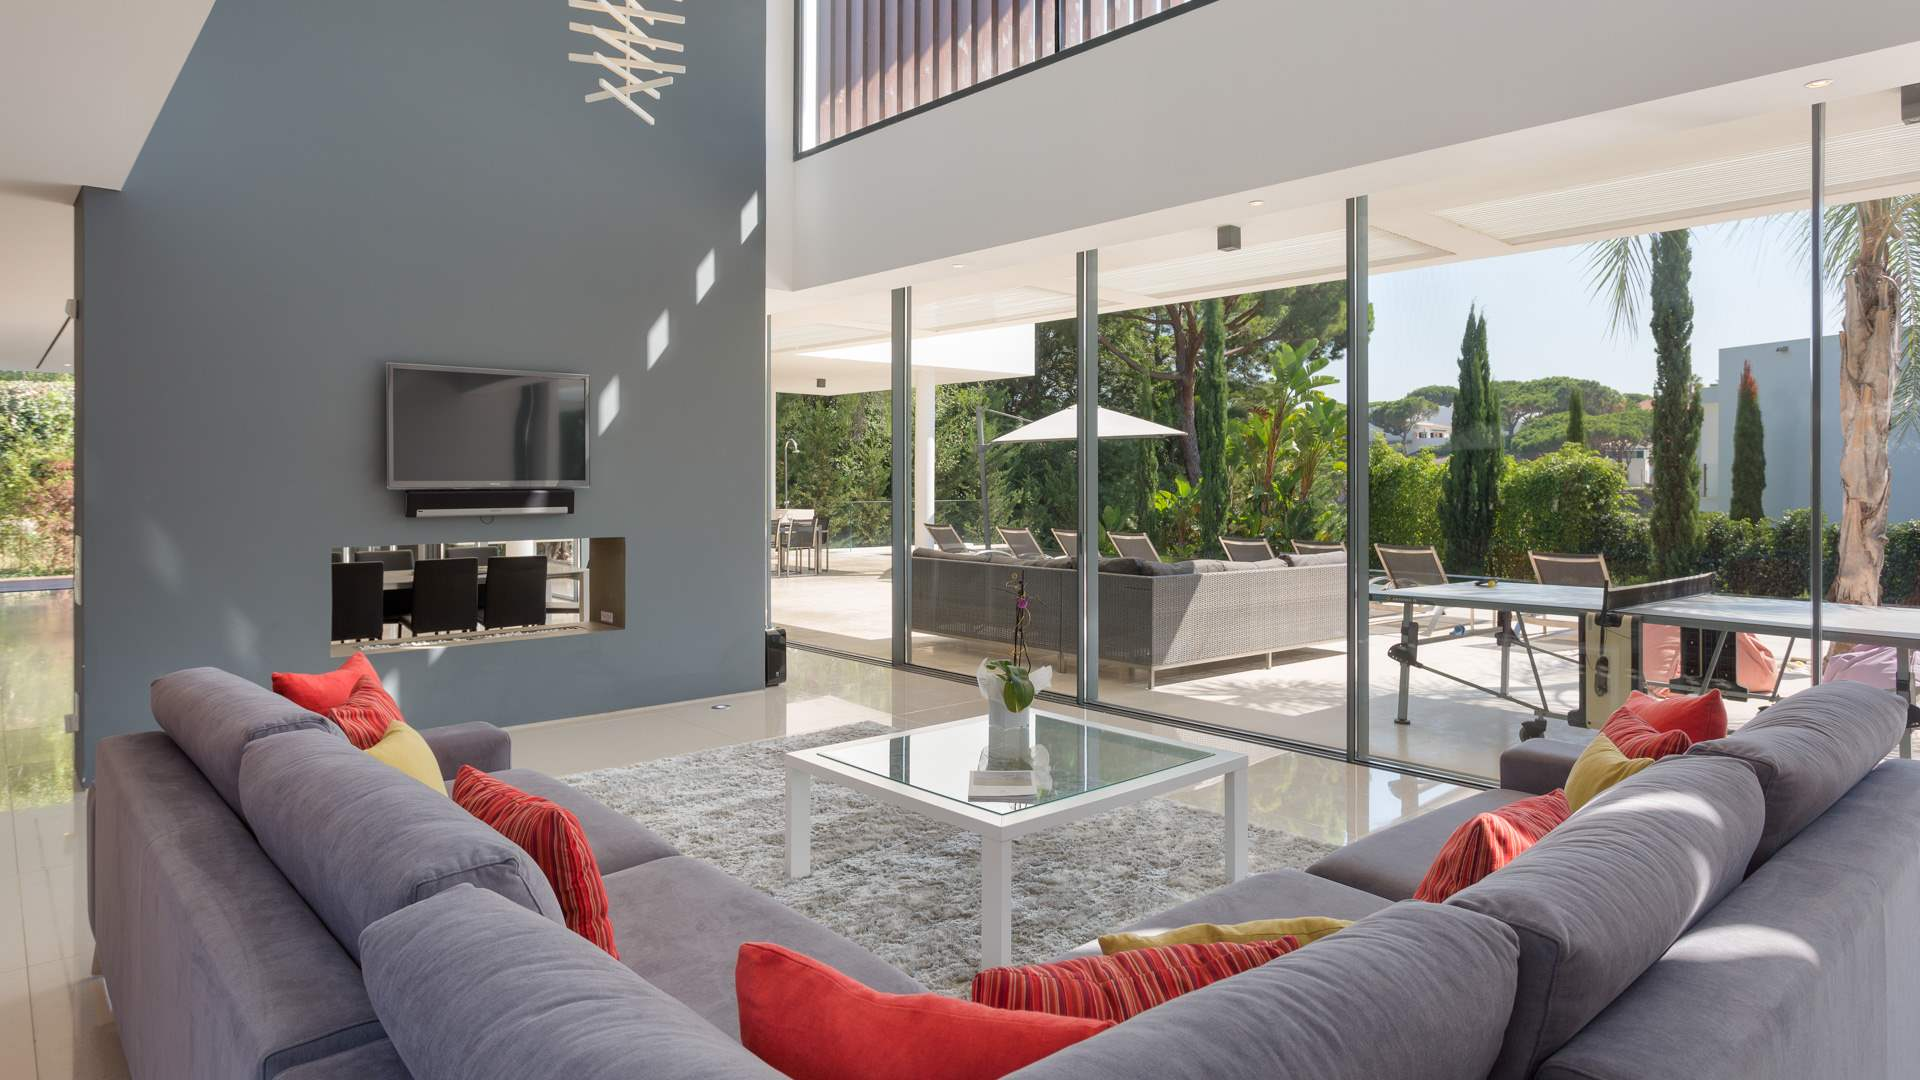 Villa Felicity, 4 bedroom villa in Vale do Lobo, Algarve Photo #4